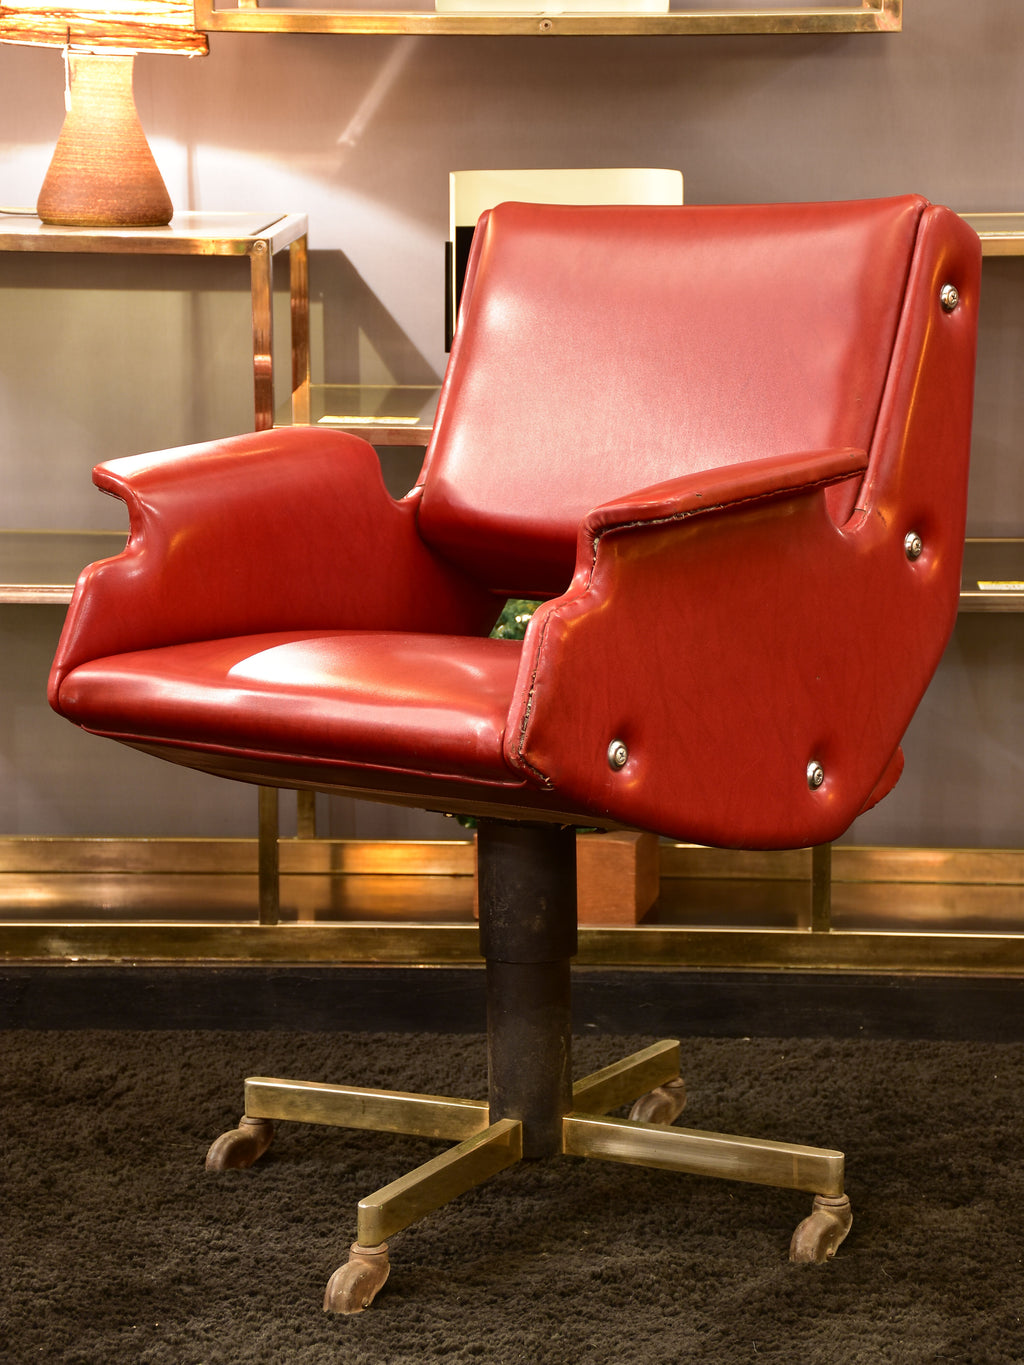 Vintage French swivel armchair - red skai 1960's